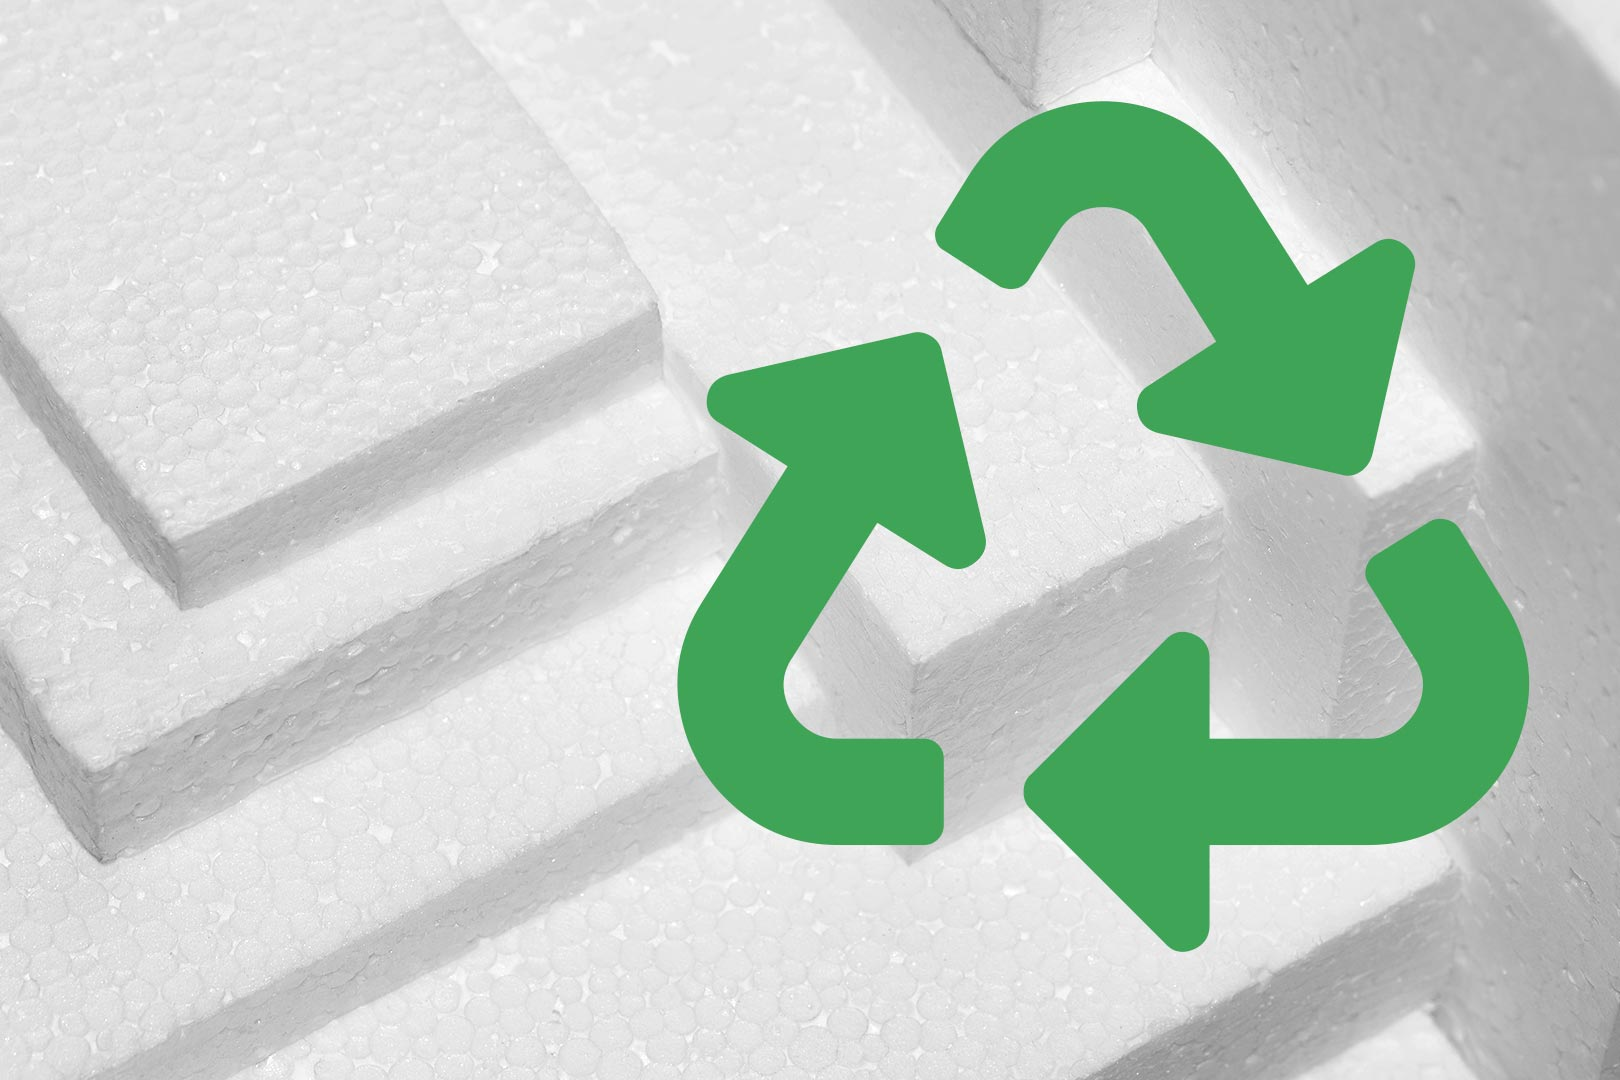 Photograph of recycling symbol over packaging